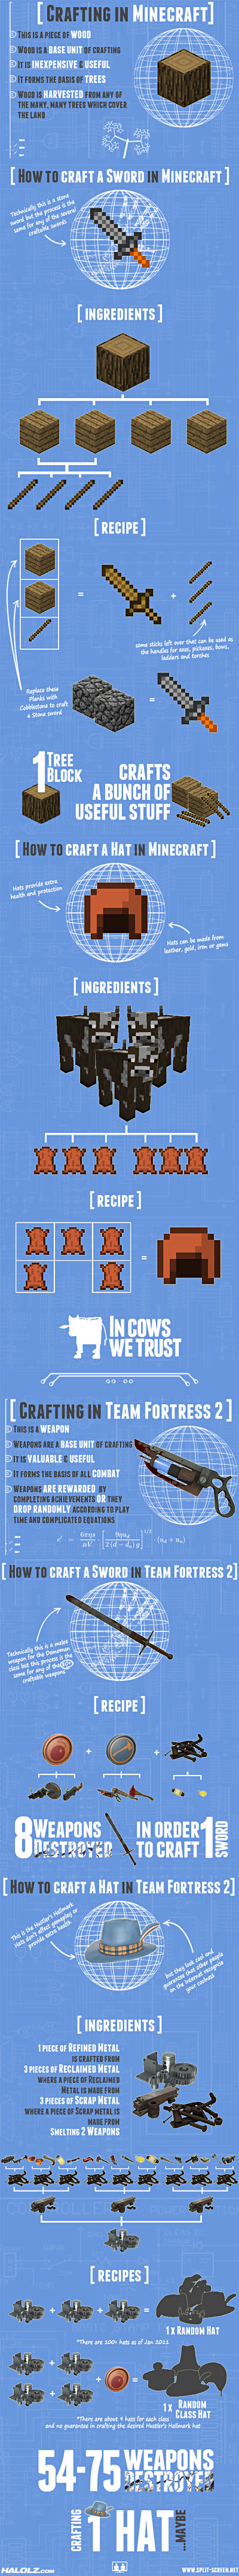 Minecraft vs Team Fortress 2 Crafting Infographic So this is what